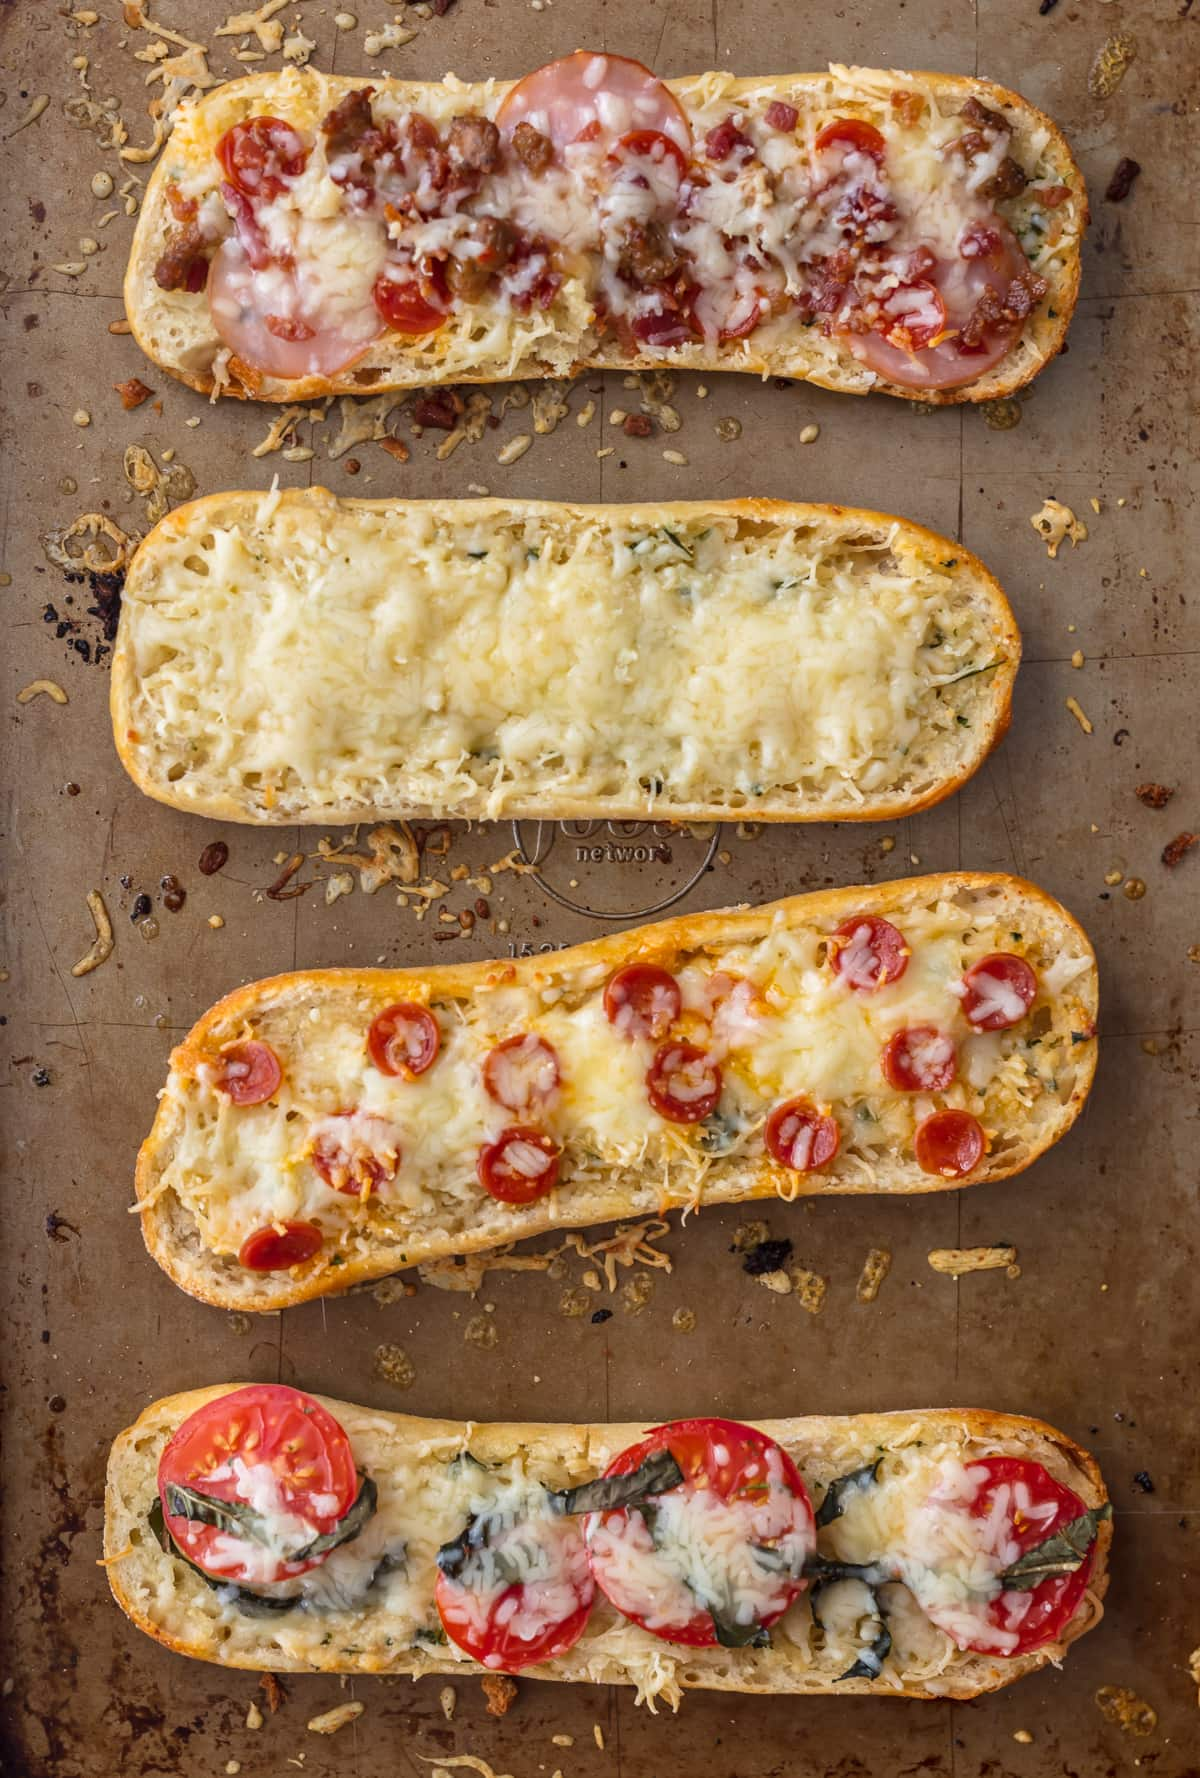 Four french bread pizza on a baking sheet: one topped with meat, one with cheese, one with pepperonis, one with tomatoes and basil